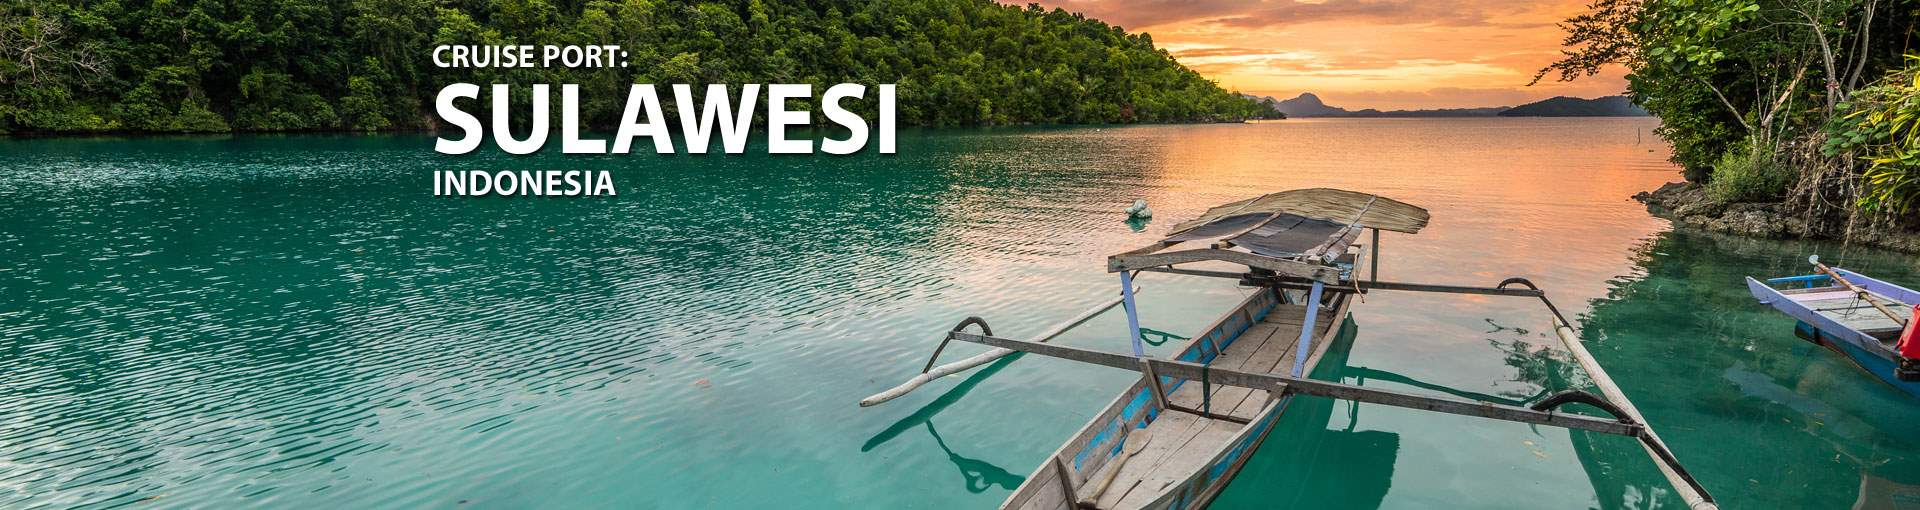 Cruises to Sulawesi, Indonesia